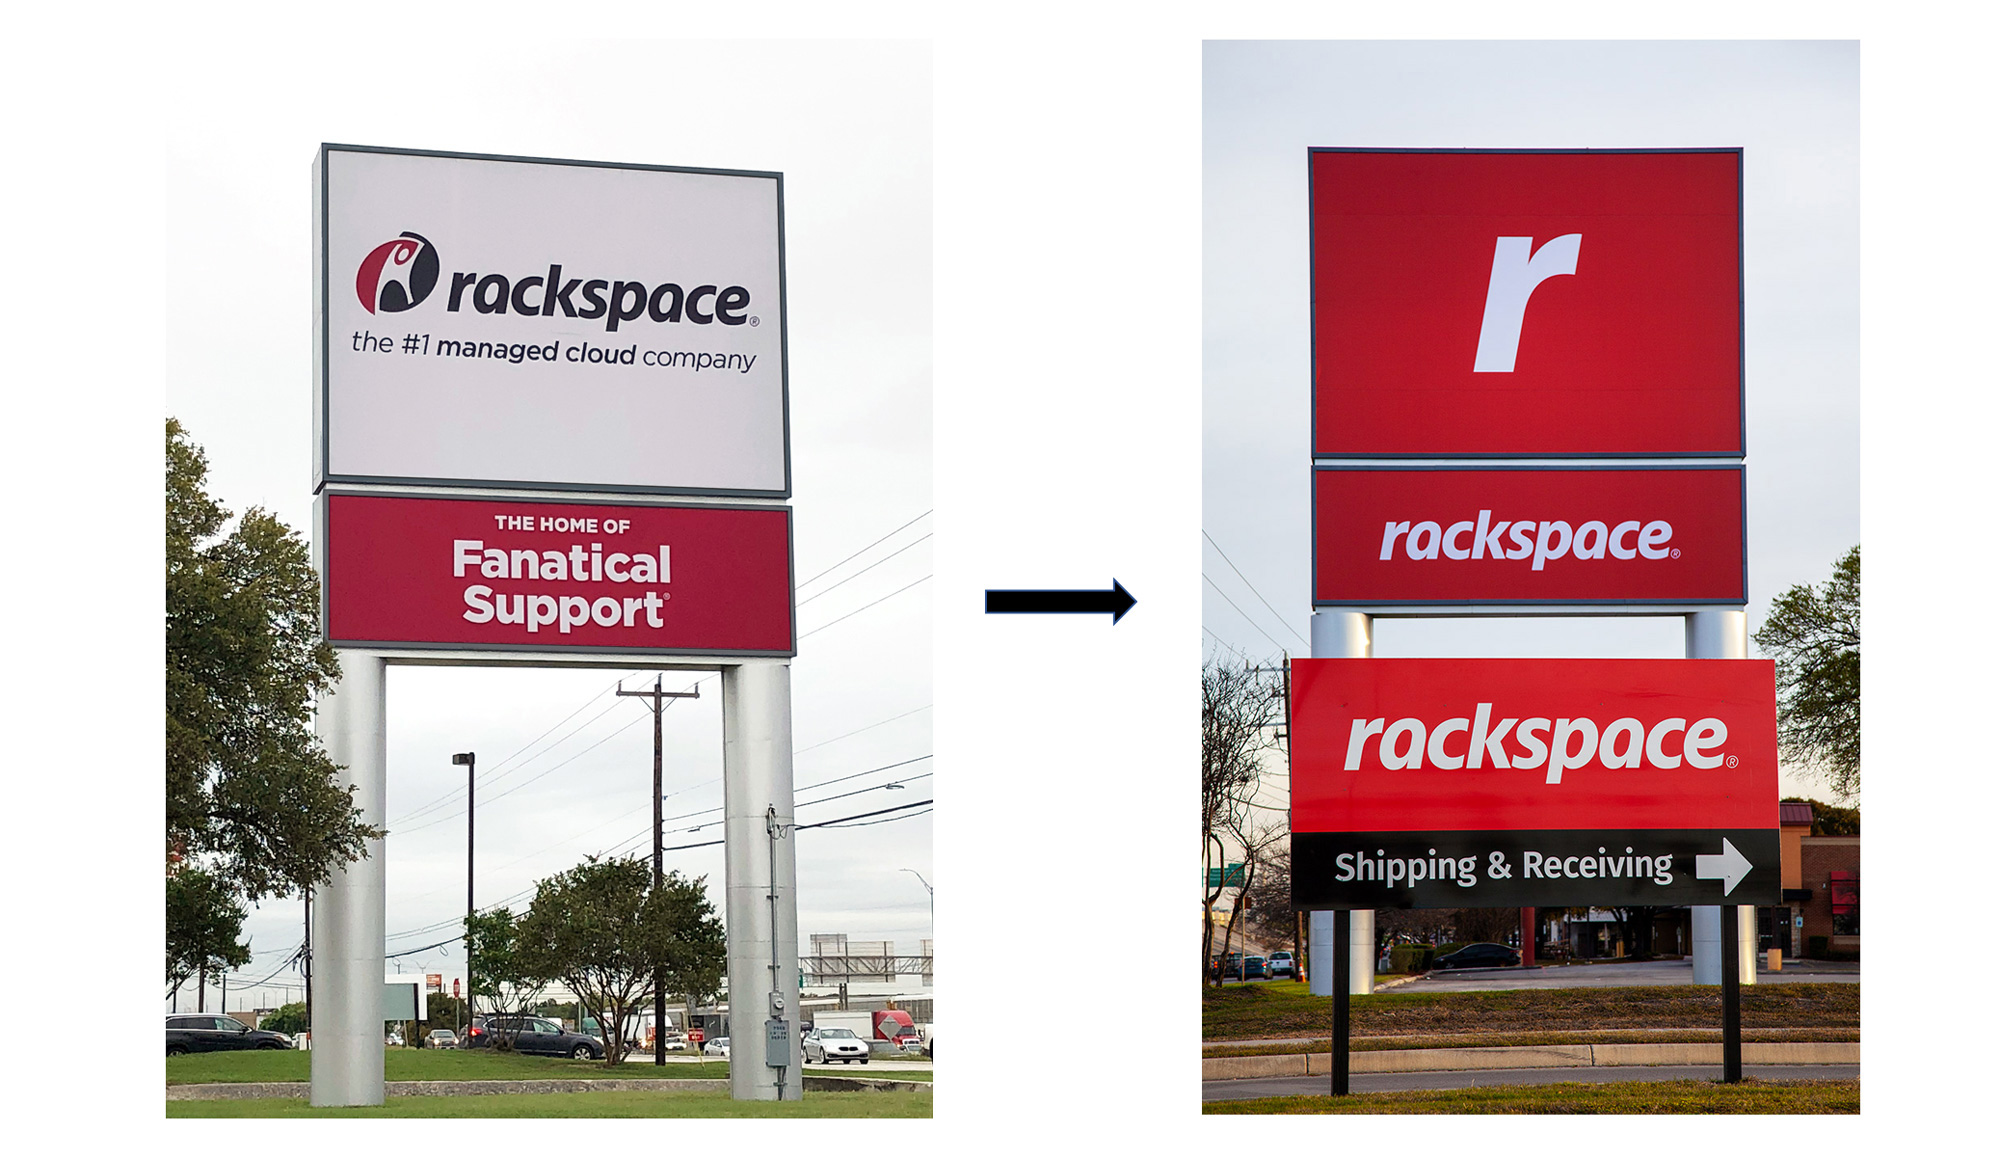 Brand New: New Logo and Identity for Rackspace by Havas.